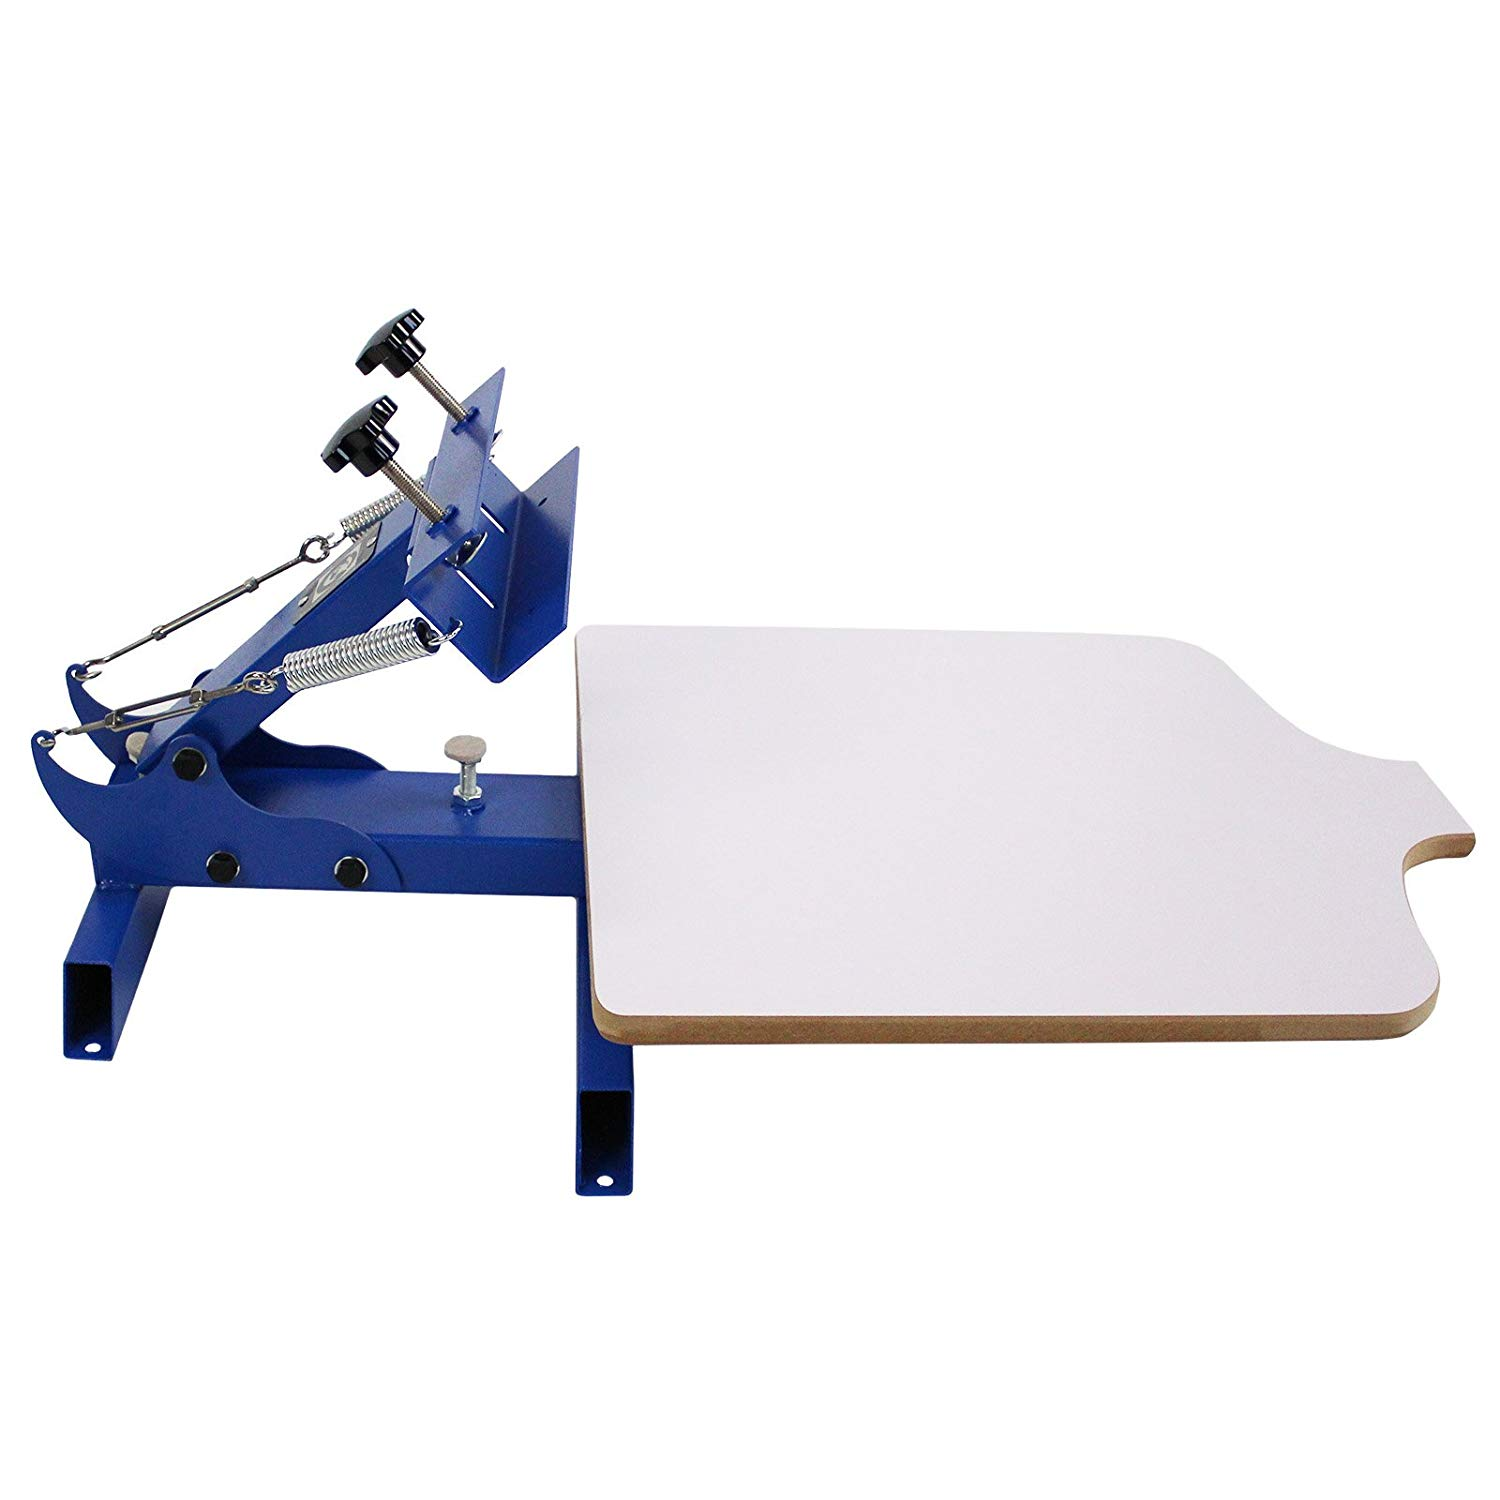 Simple Single 1 Color 1 Station Silk Screen Printing Machine NS101